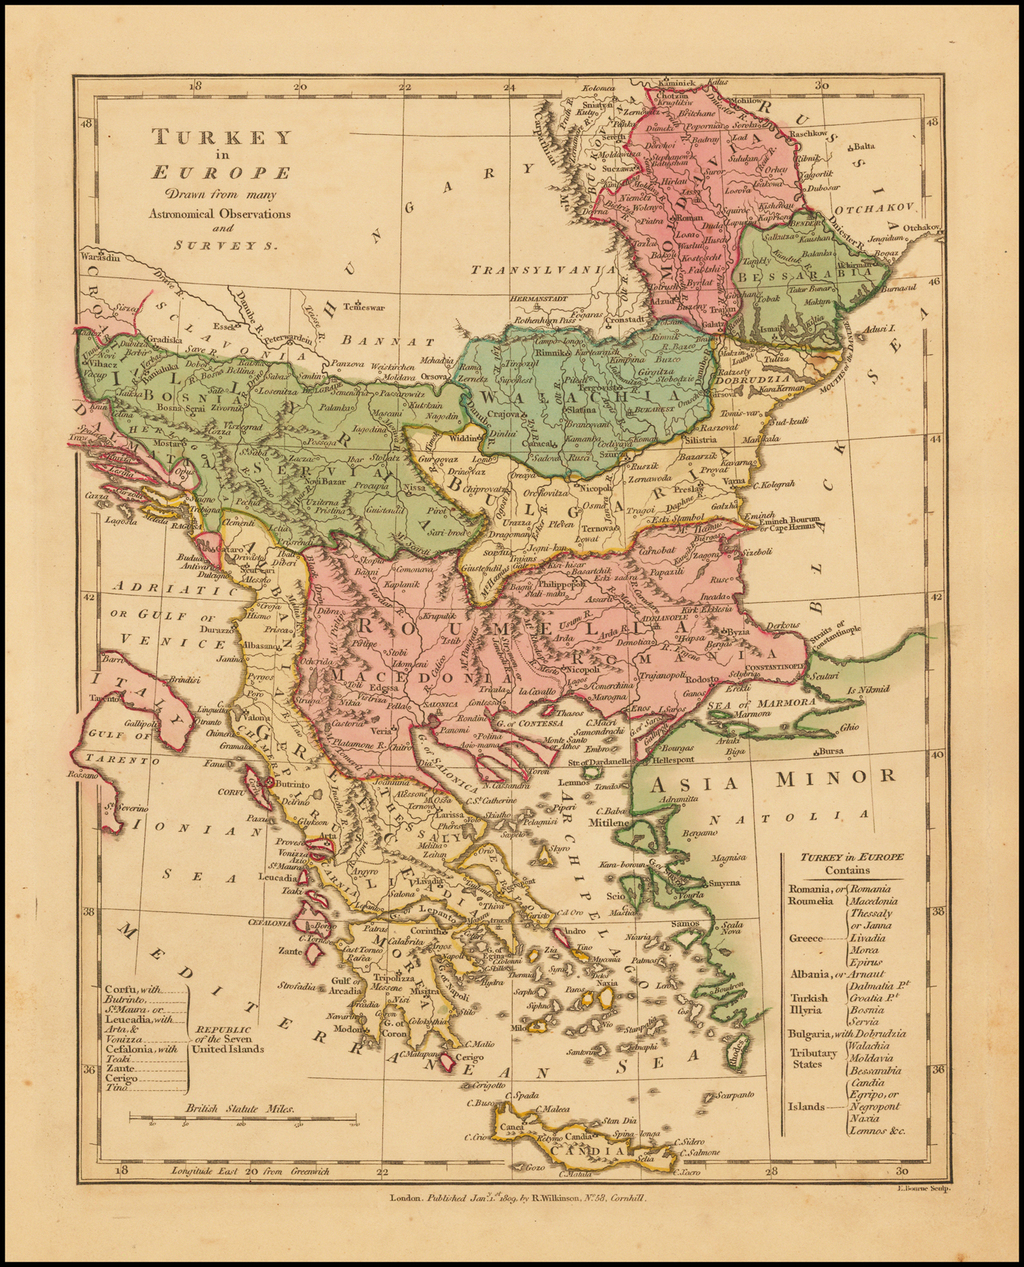 Turkey in Europe Drawn from many Astronomical Observations and Surveys By Robert Wilkinson